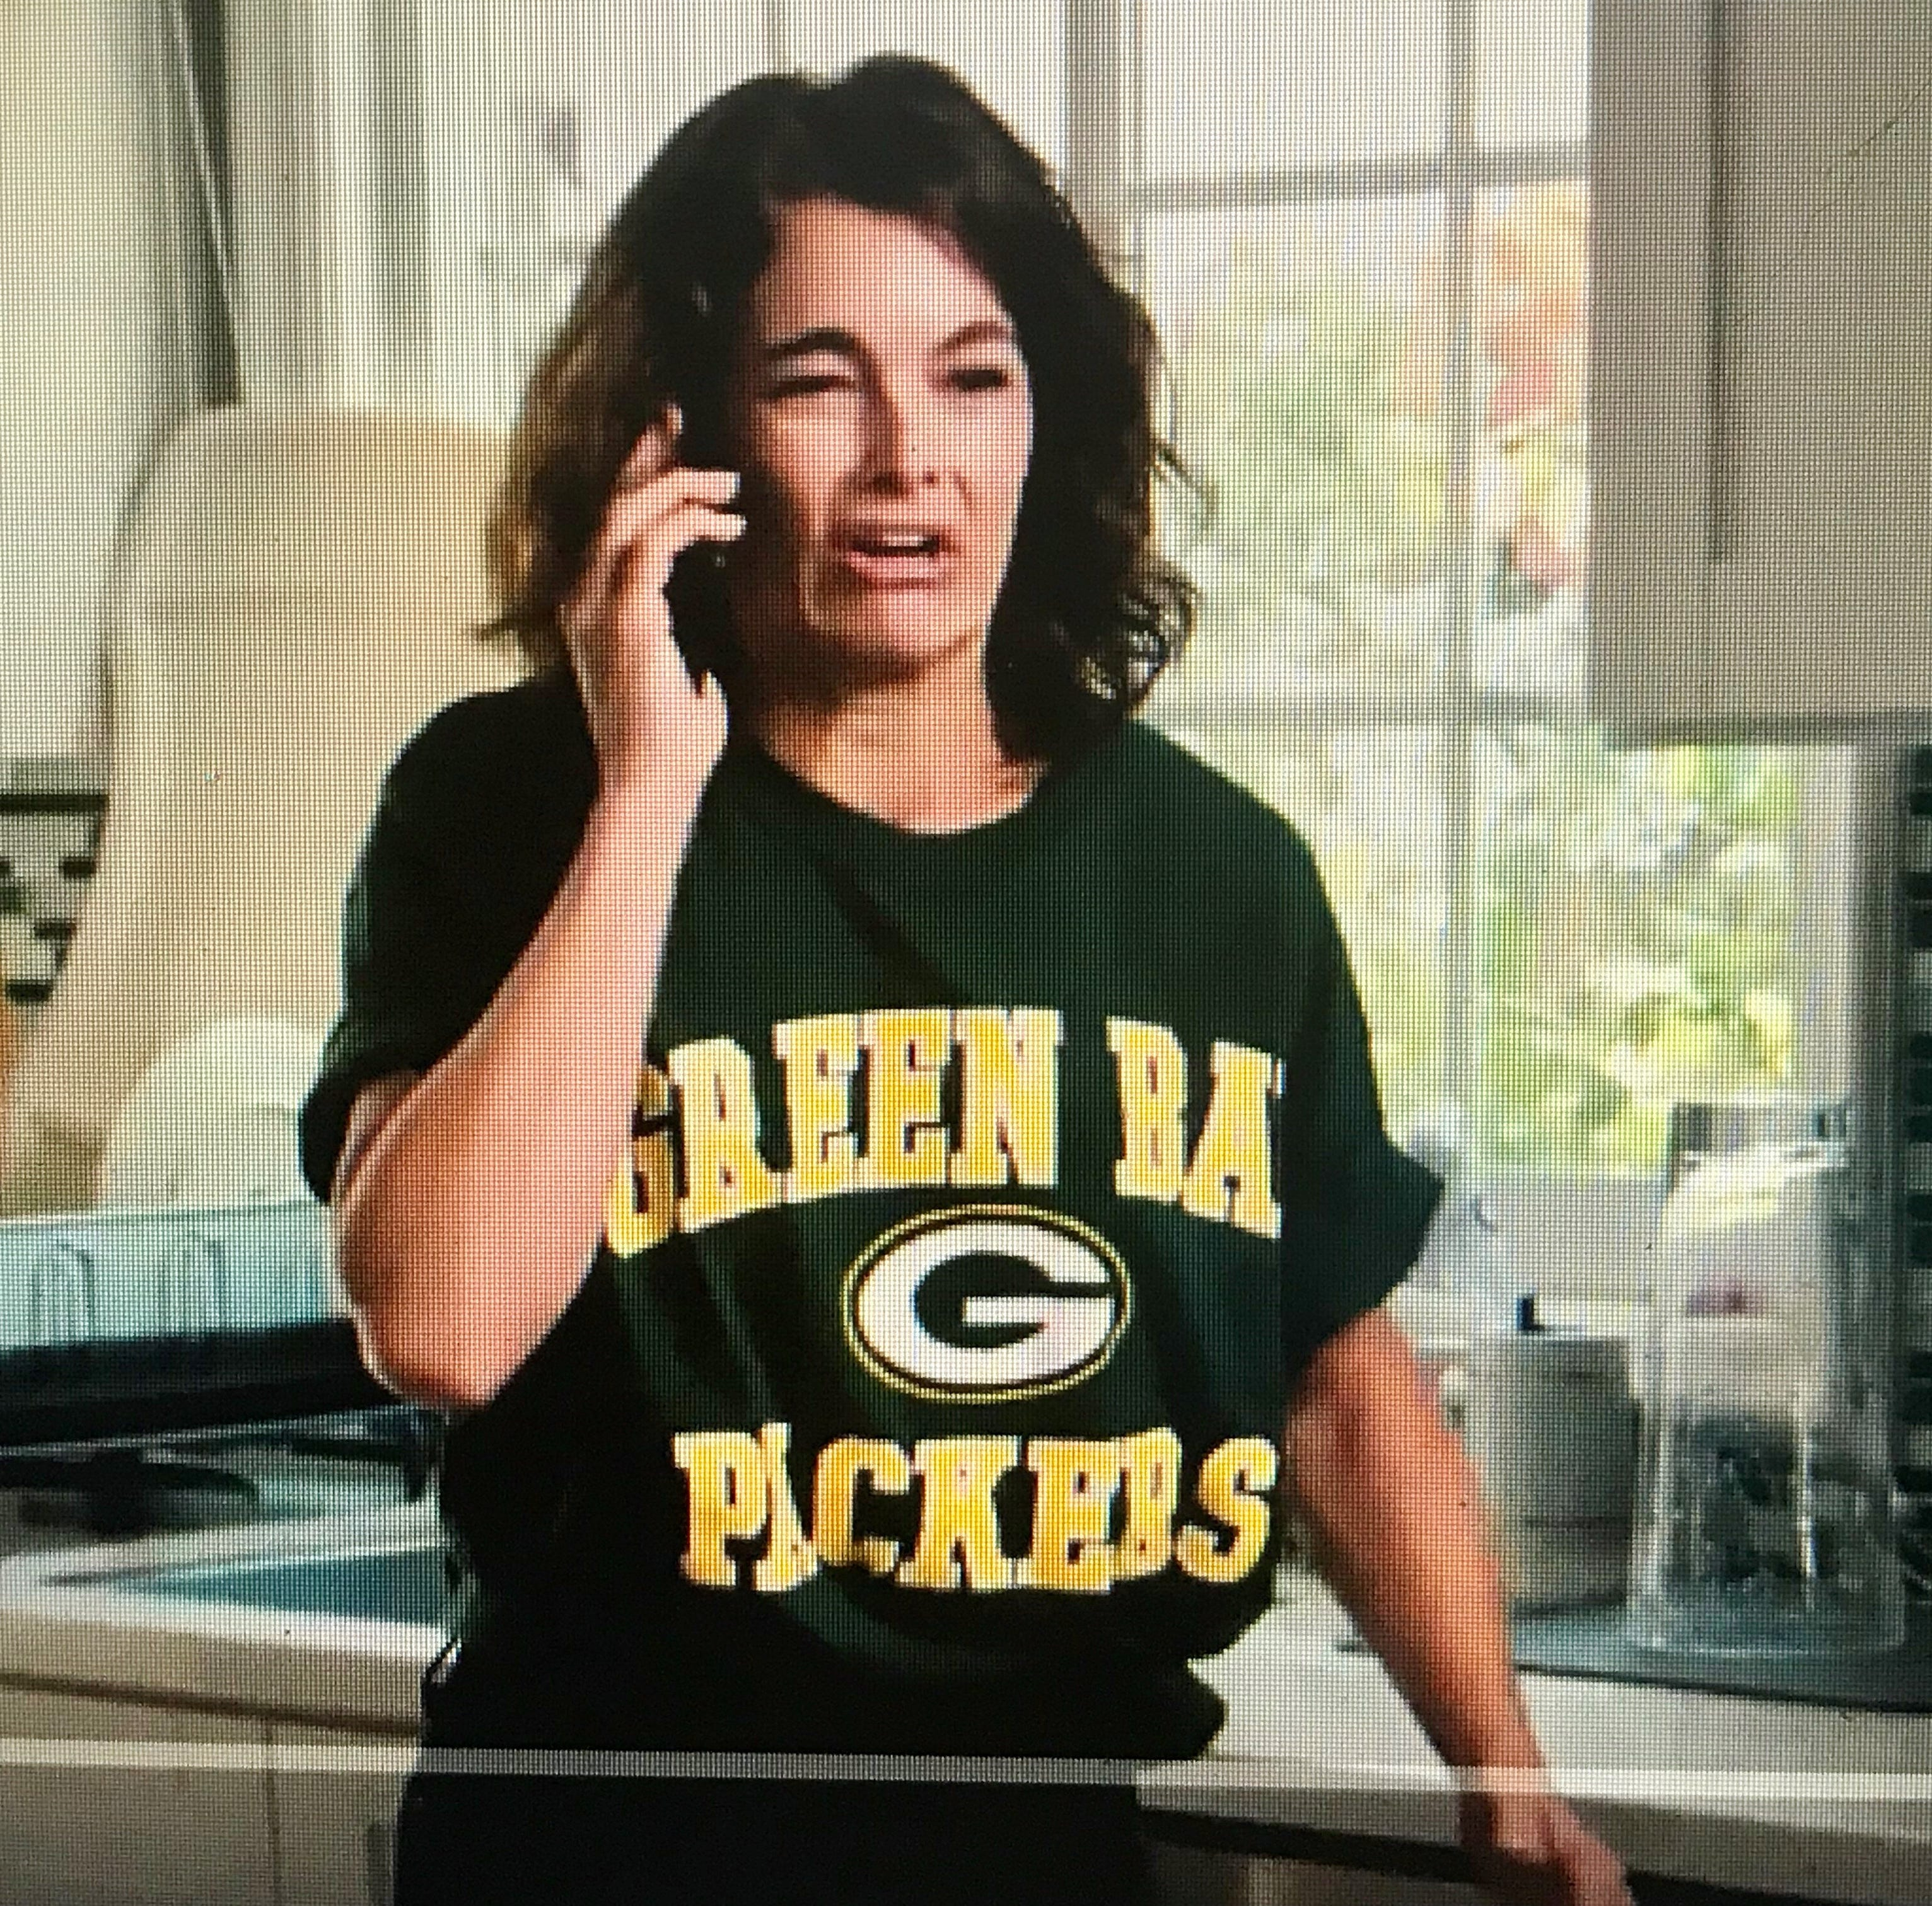 'Fox NFL Sunday's' spoof of '9-1-1' has some fun at Mason Crosby's expense